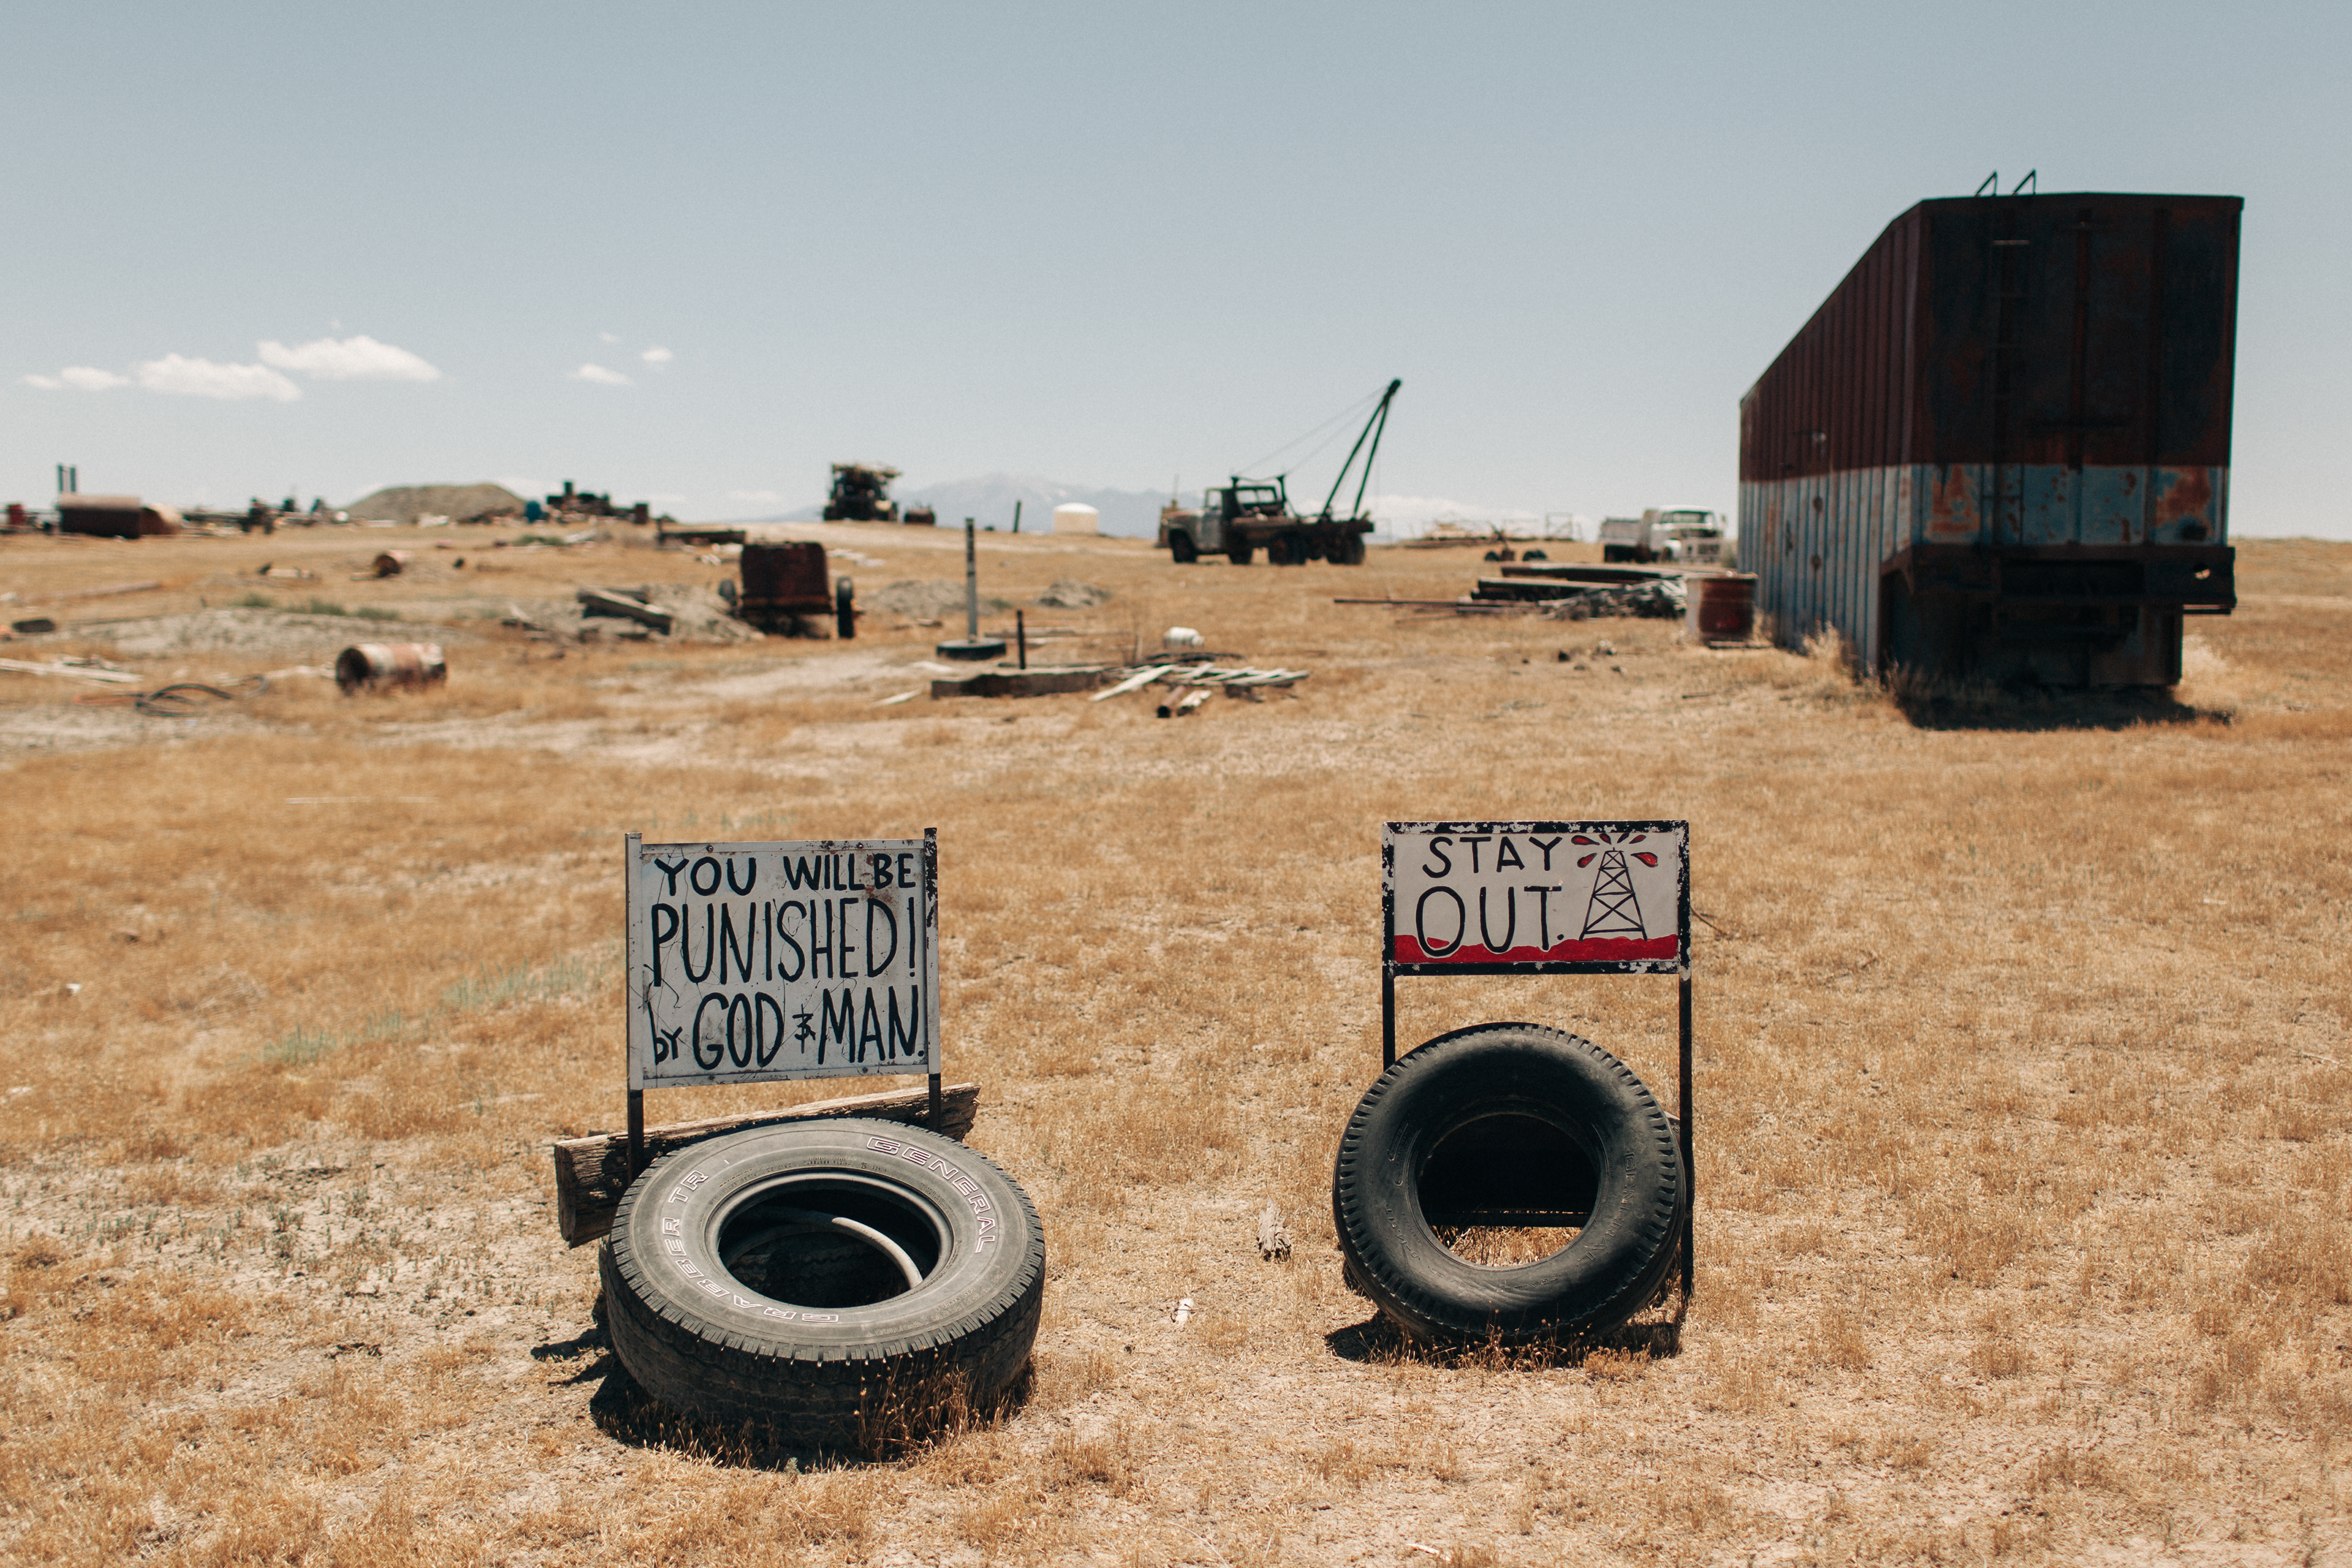 Cinematic Images of the New American West